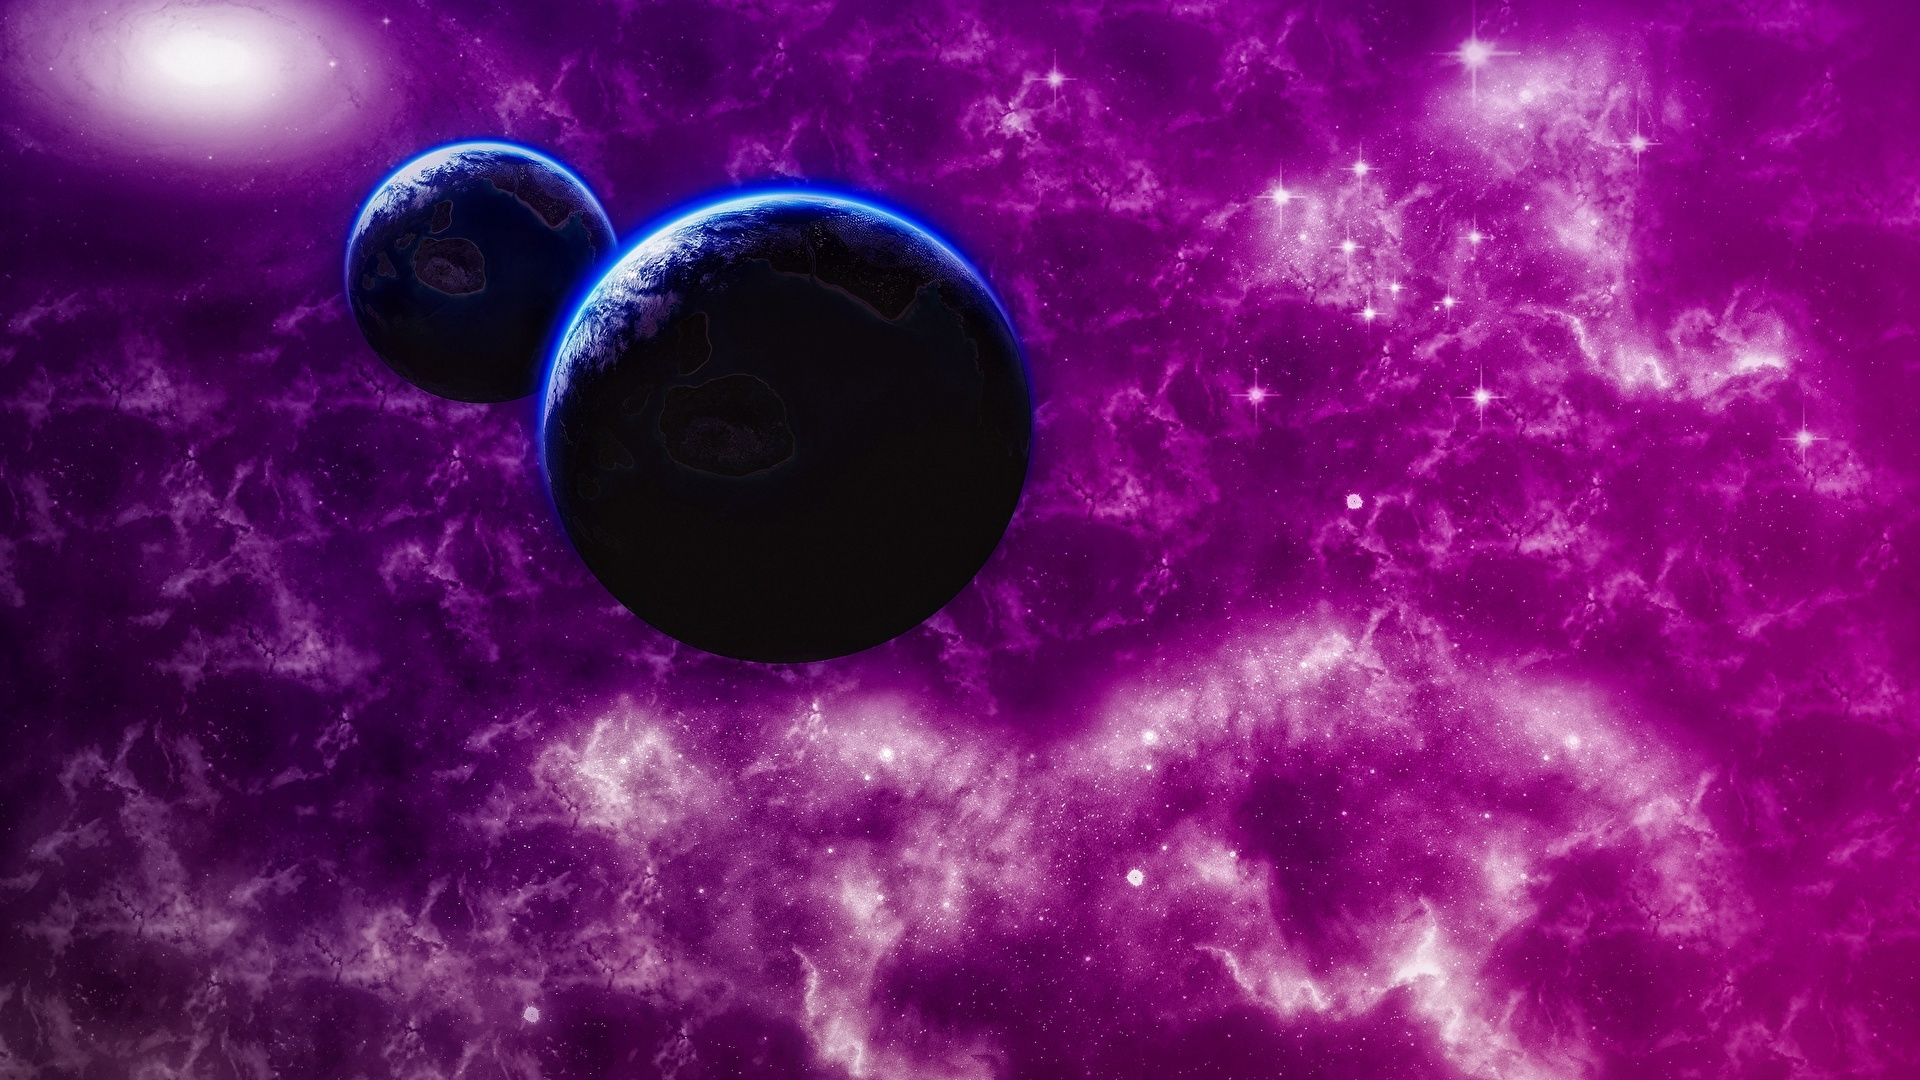 Purple Space wallpaper for pc